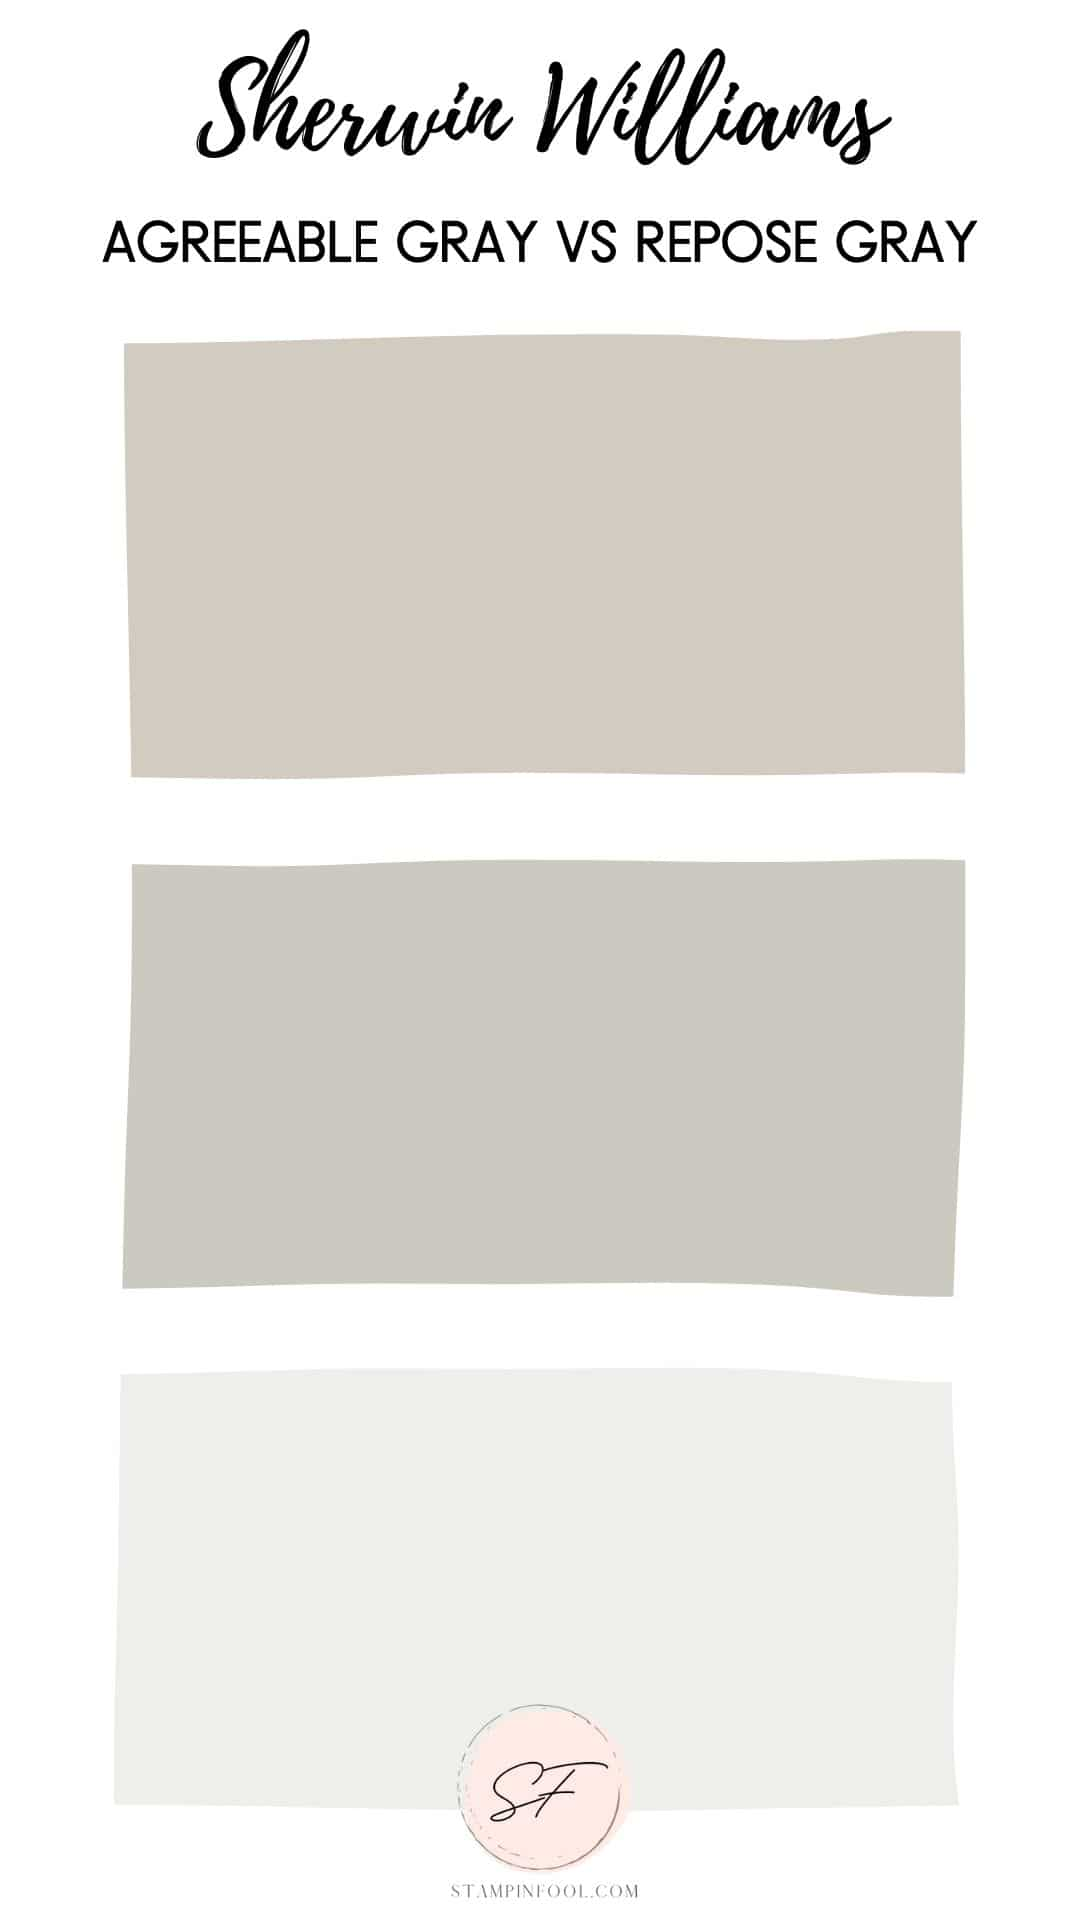 Agreeable Gray v Repose Gray Paint: Everything You Need to Know